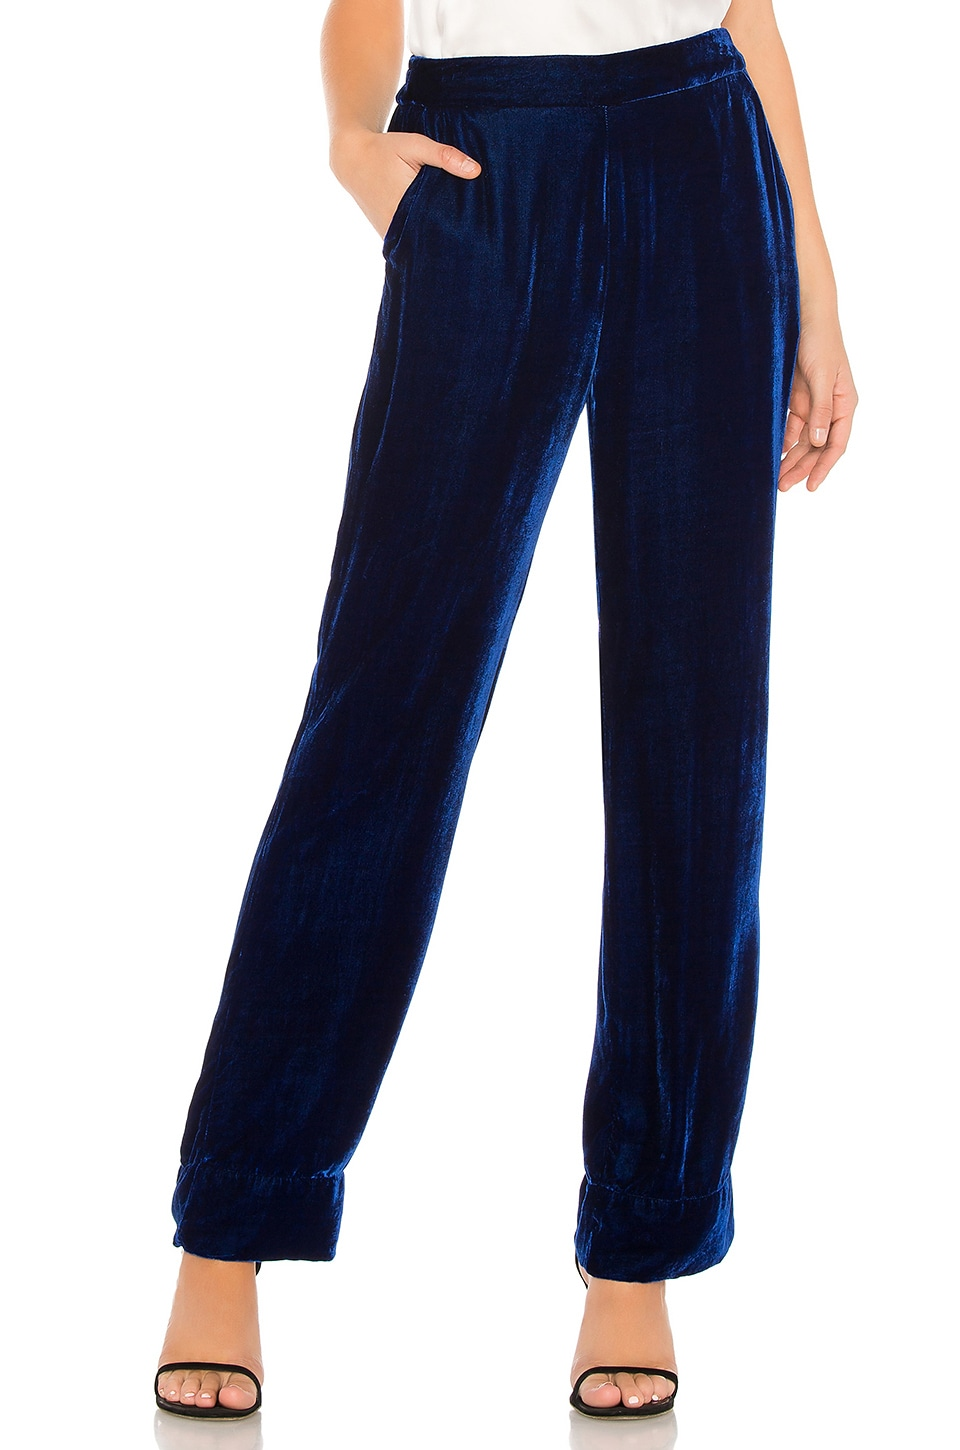 AMANDA BOND Hannah Pant in Royal